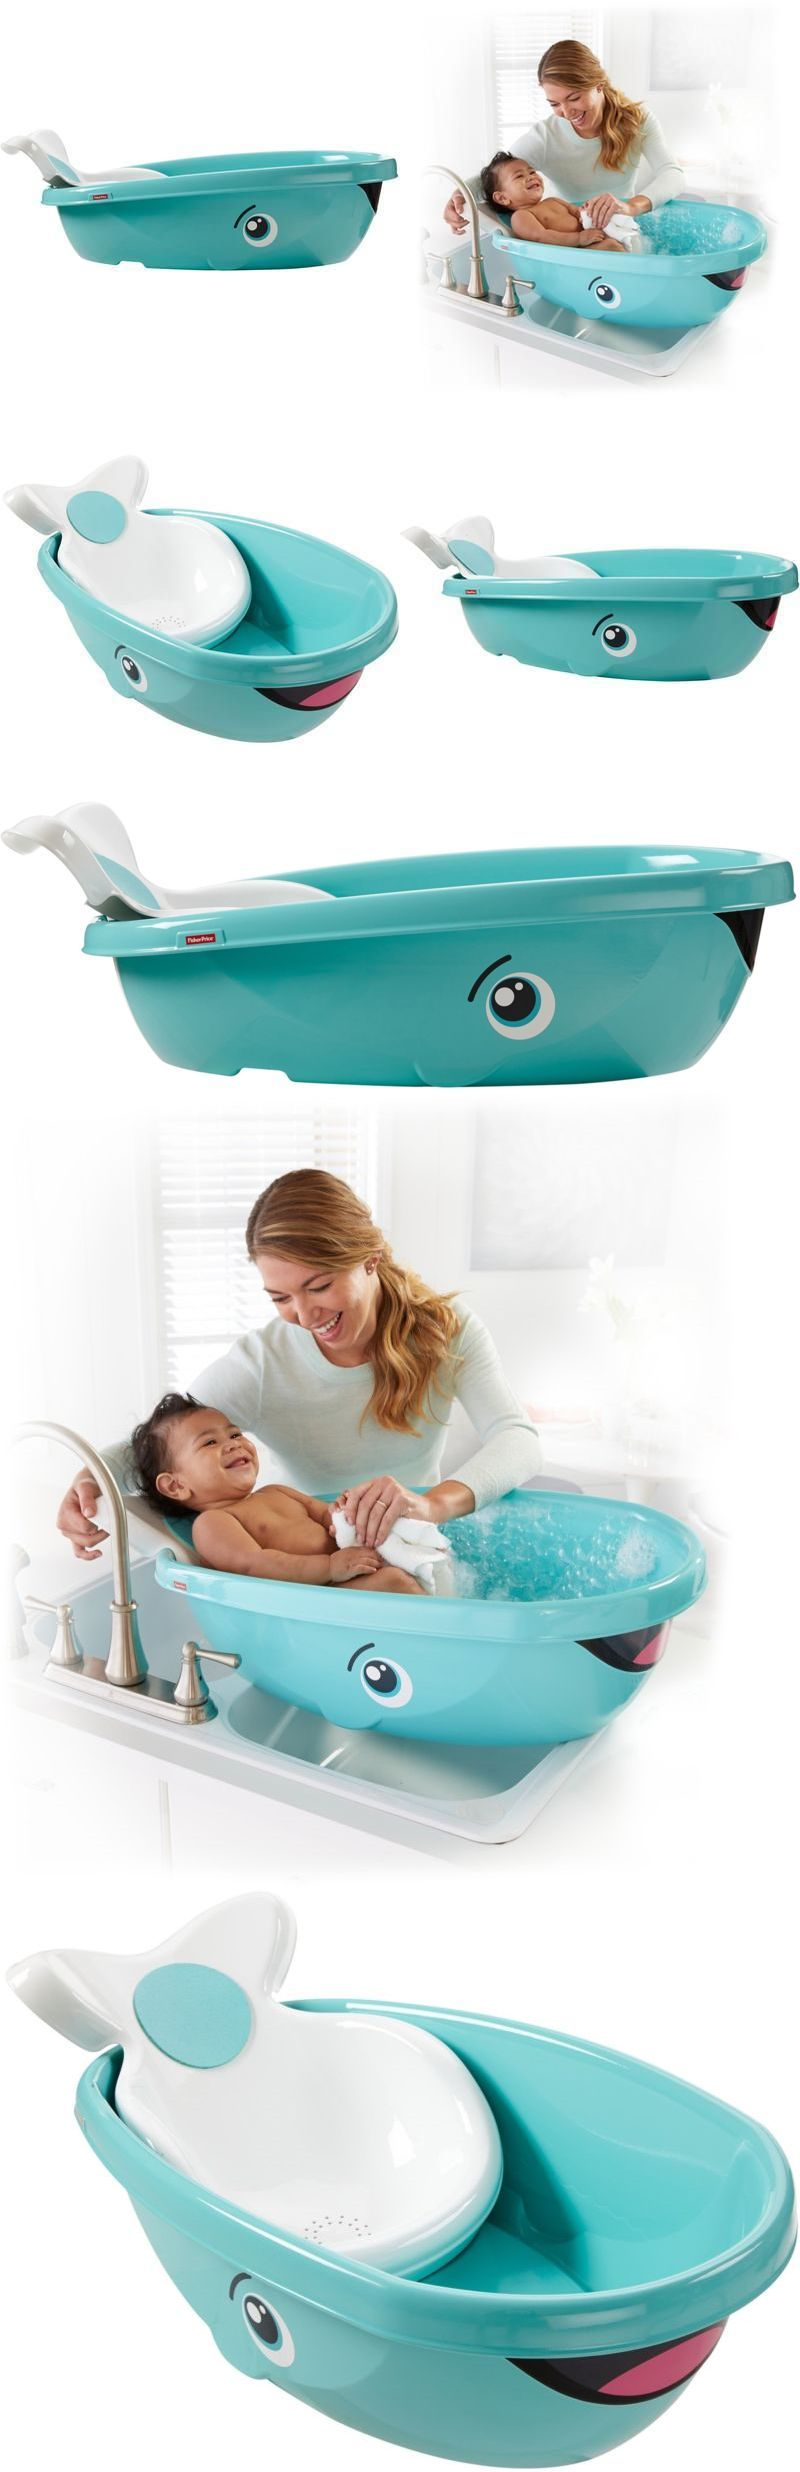 Whale Design Shower Bath Safety Seat Tub Bathtub for Baby Kids ...